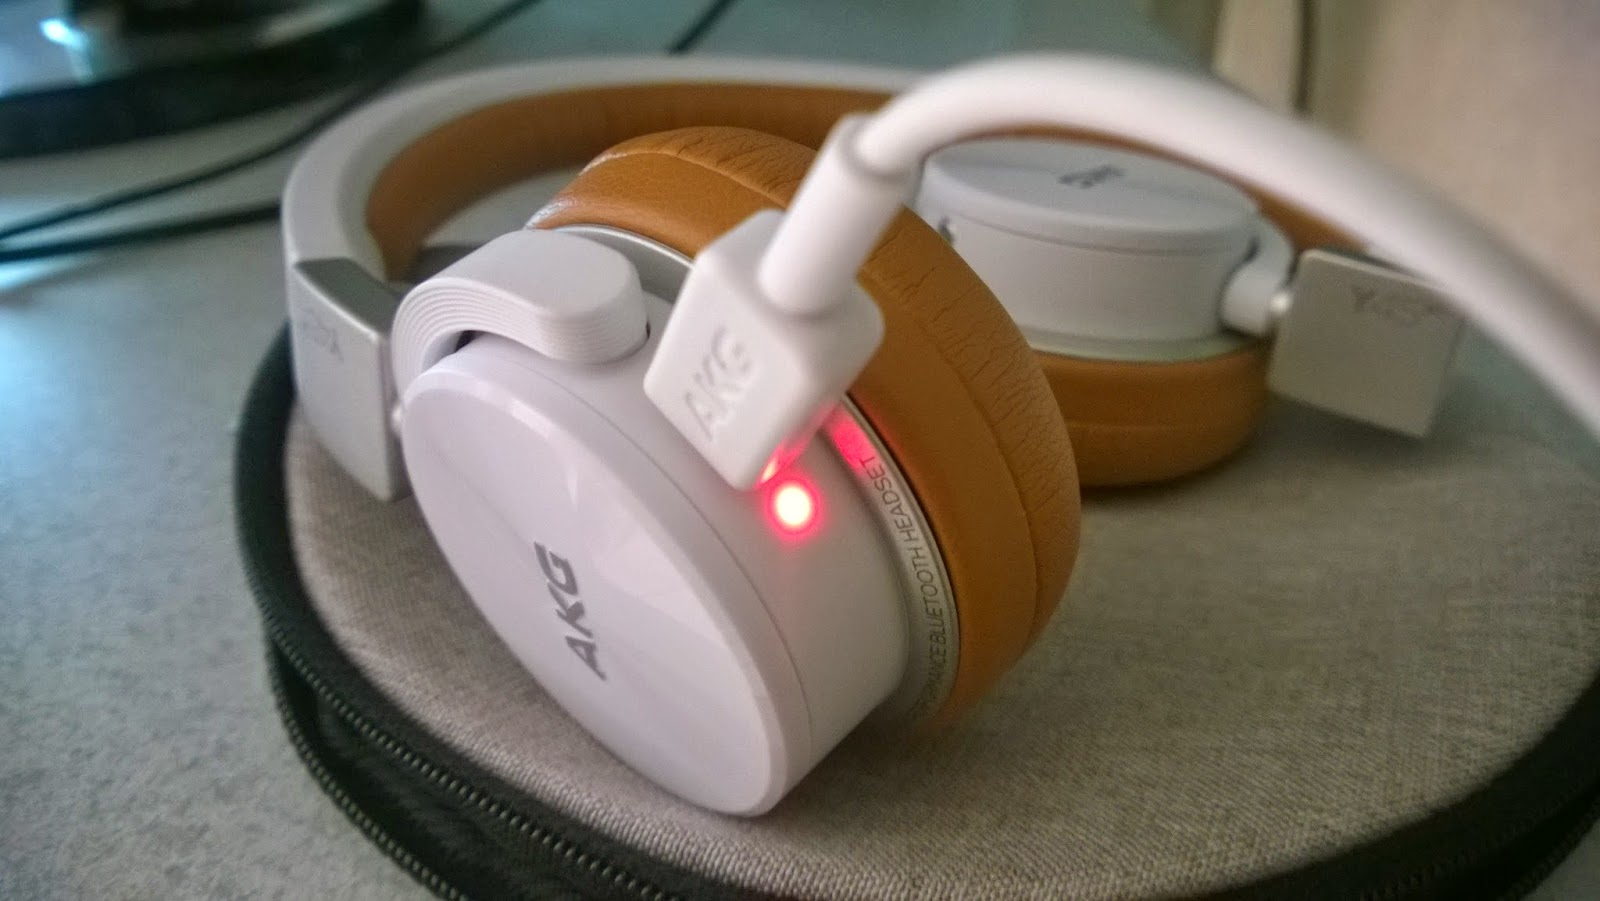 Lovaparusa Akg Y45bt Review Headphone Y50bt My Headsets First Charging Time Was About 1 Hour And 30 Minutes A Red Light Glows Up Telling Me That The Is In Progress When